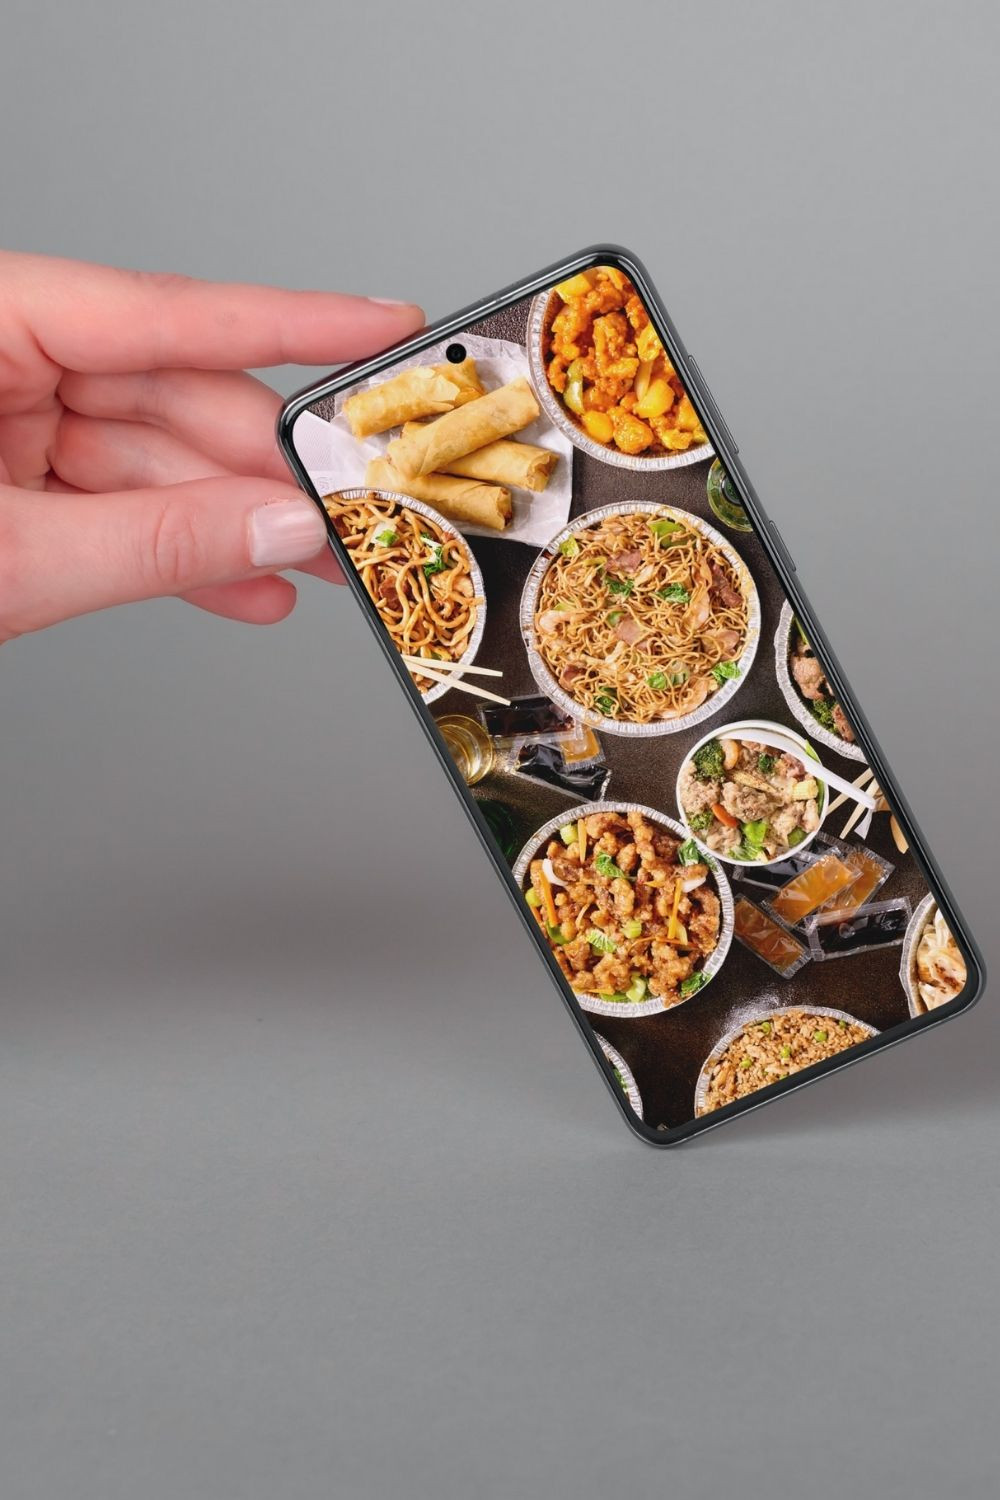 iPhone with takeout food waste apps